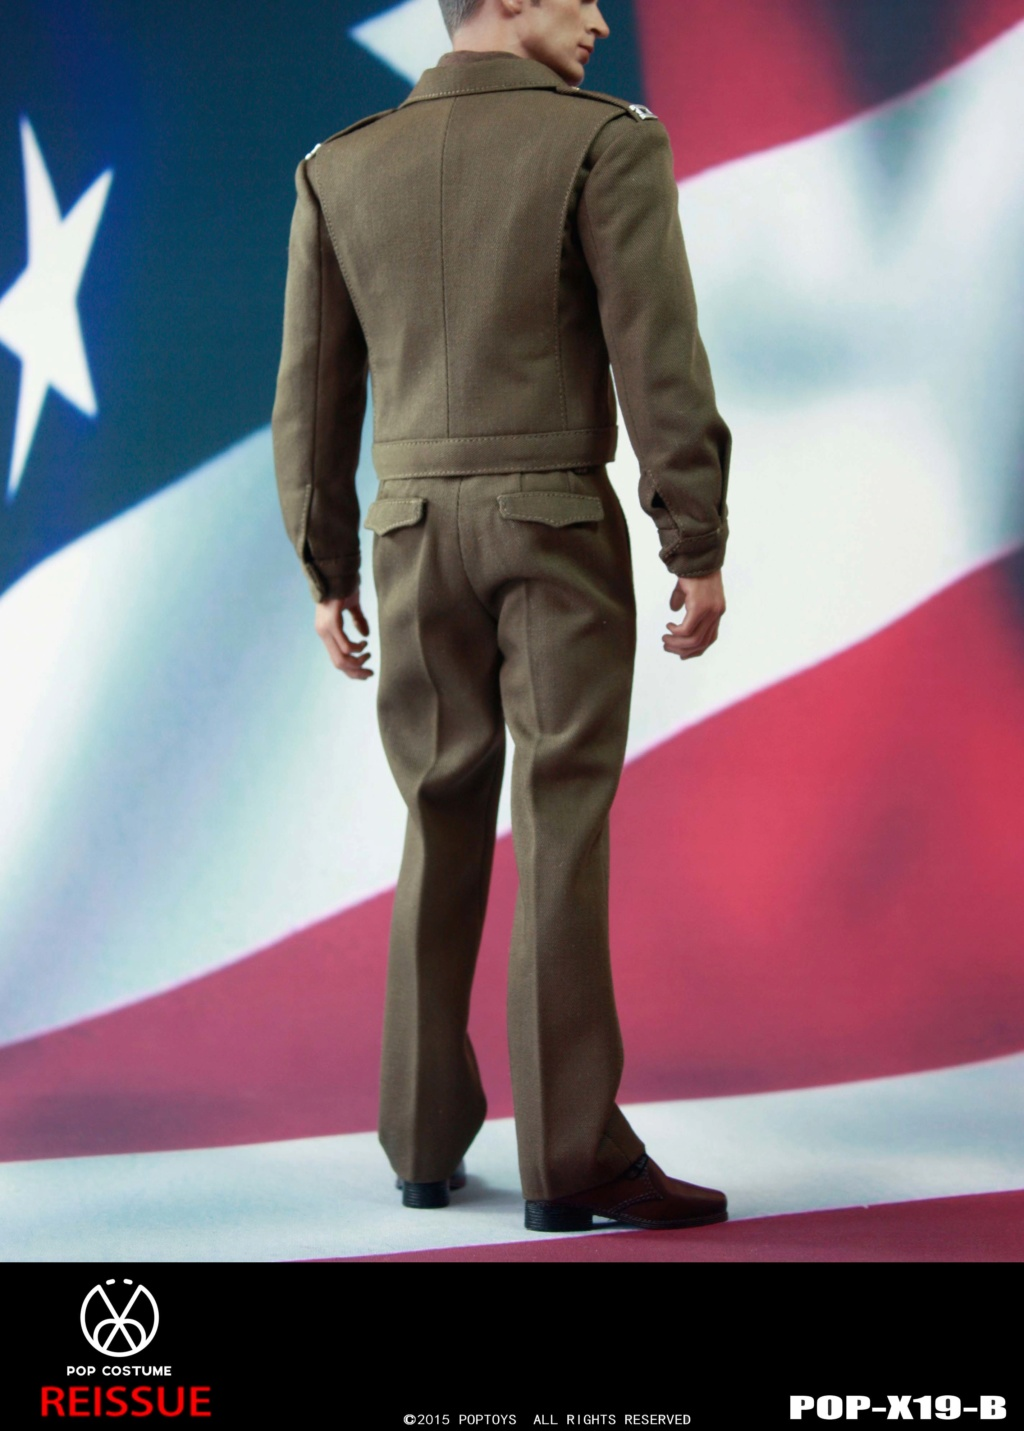 male - NEW PRODUCT: POPTOYS: 1/6 Series X19 - World War II Golden Age US Army Uniform Uniform Set - B (Reprinted in 2019) 21302010